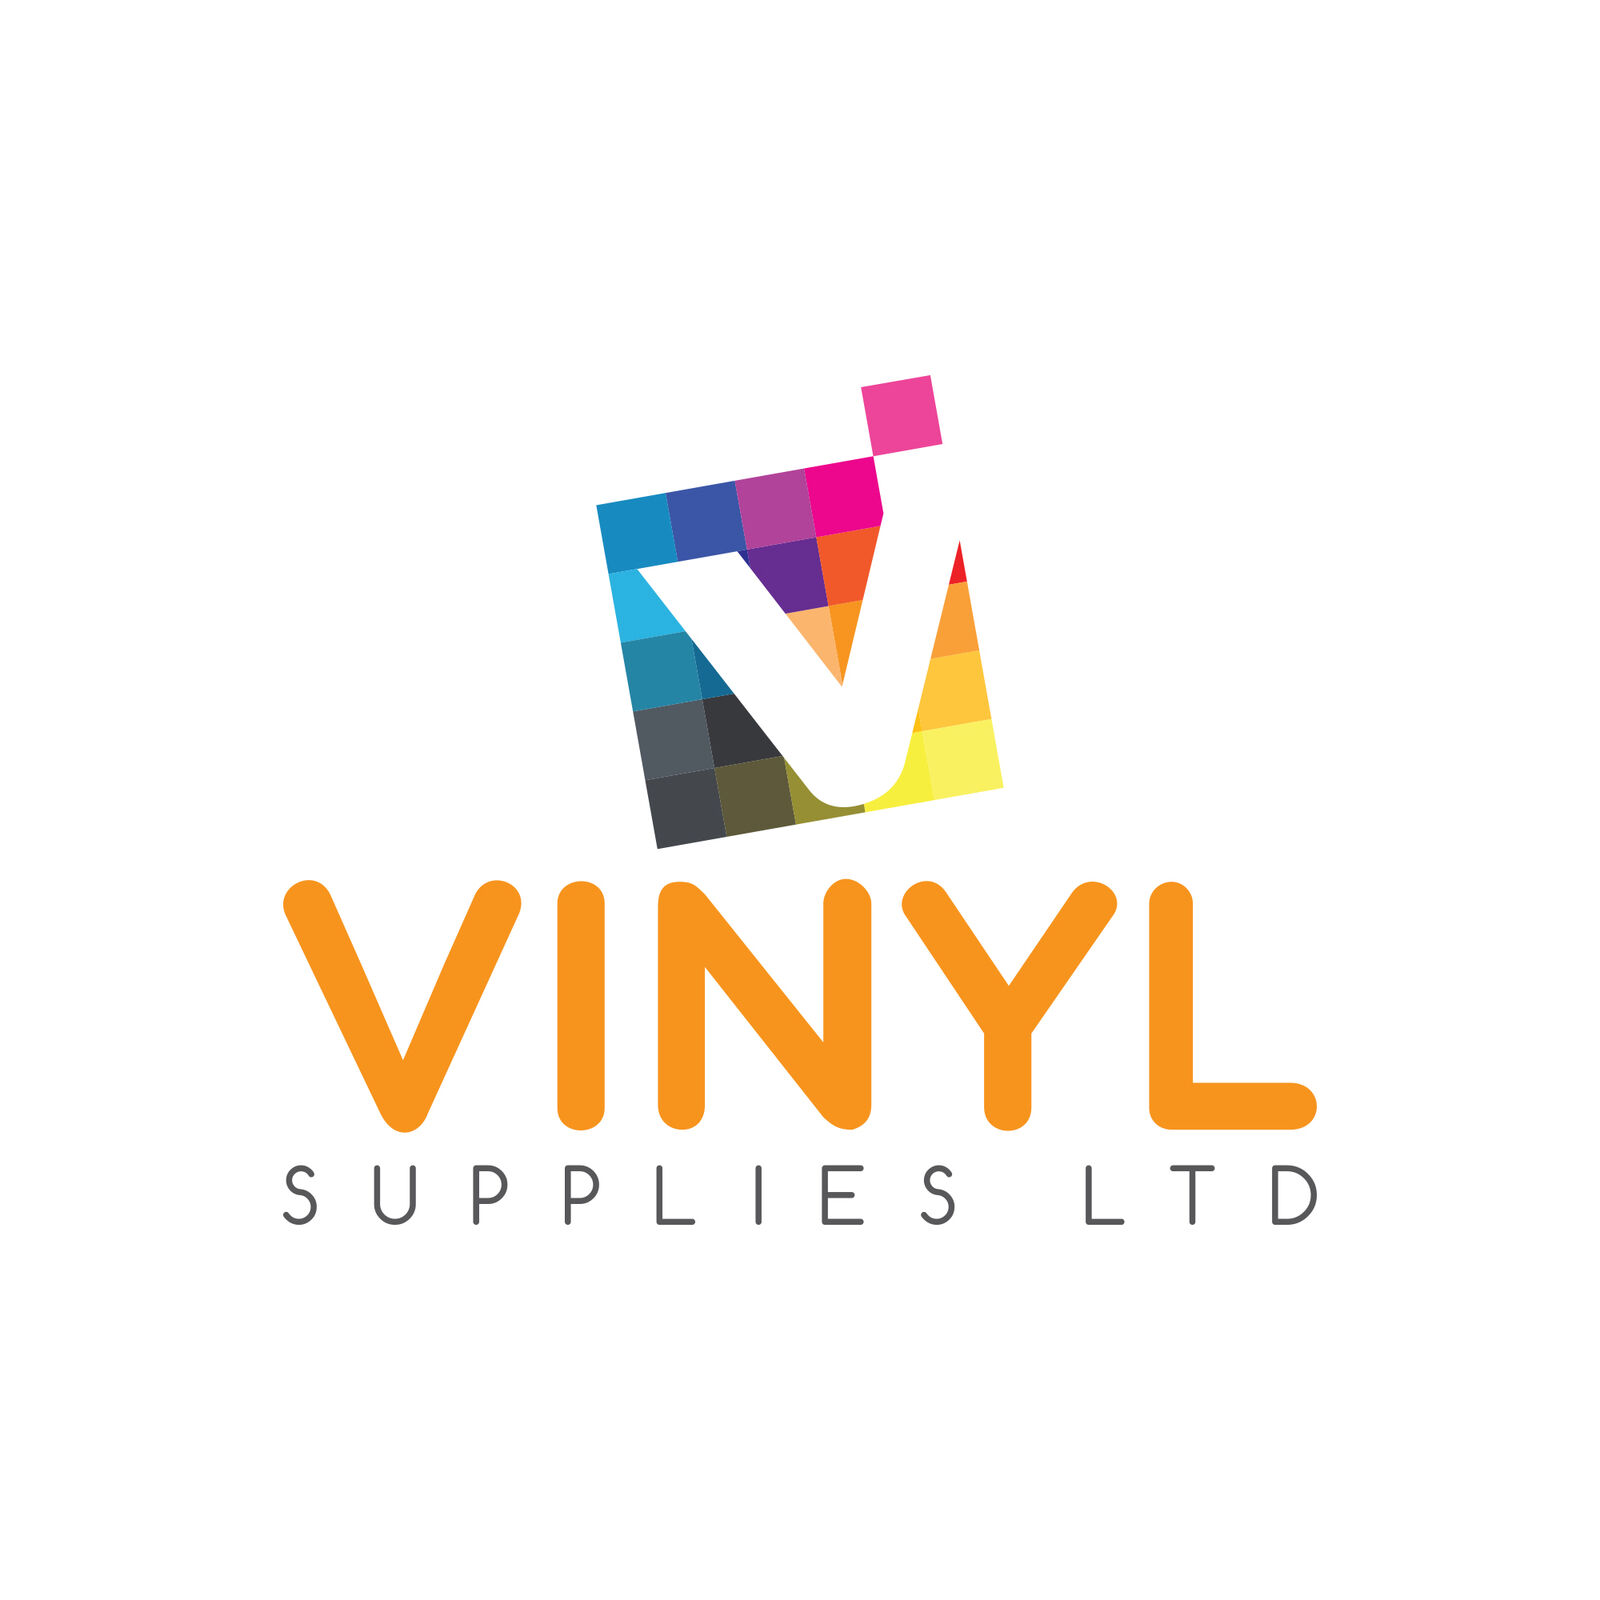 vinylsupplies-ltd